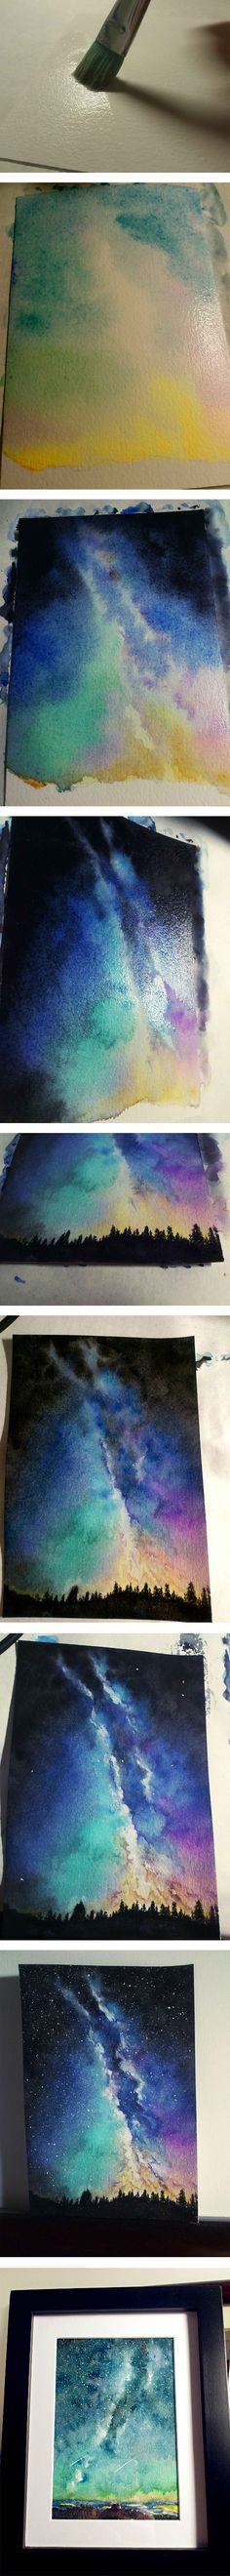 Watercolor sky Tutorial could also be used with tree rubber stamps instead of painting the landscape. Watercolour Tutorials, Watercolor Techniques, Painting Techniques, Watercolor Landscape Tutorial, Guache, Art Plastique, Art Tips, Art Tutorials, Painting Inspiration